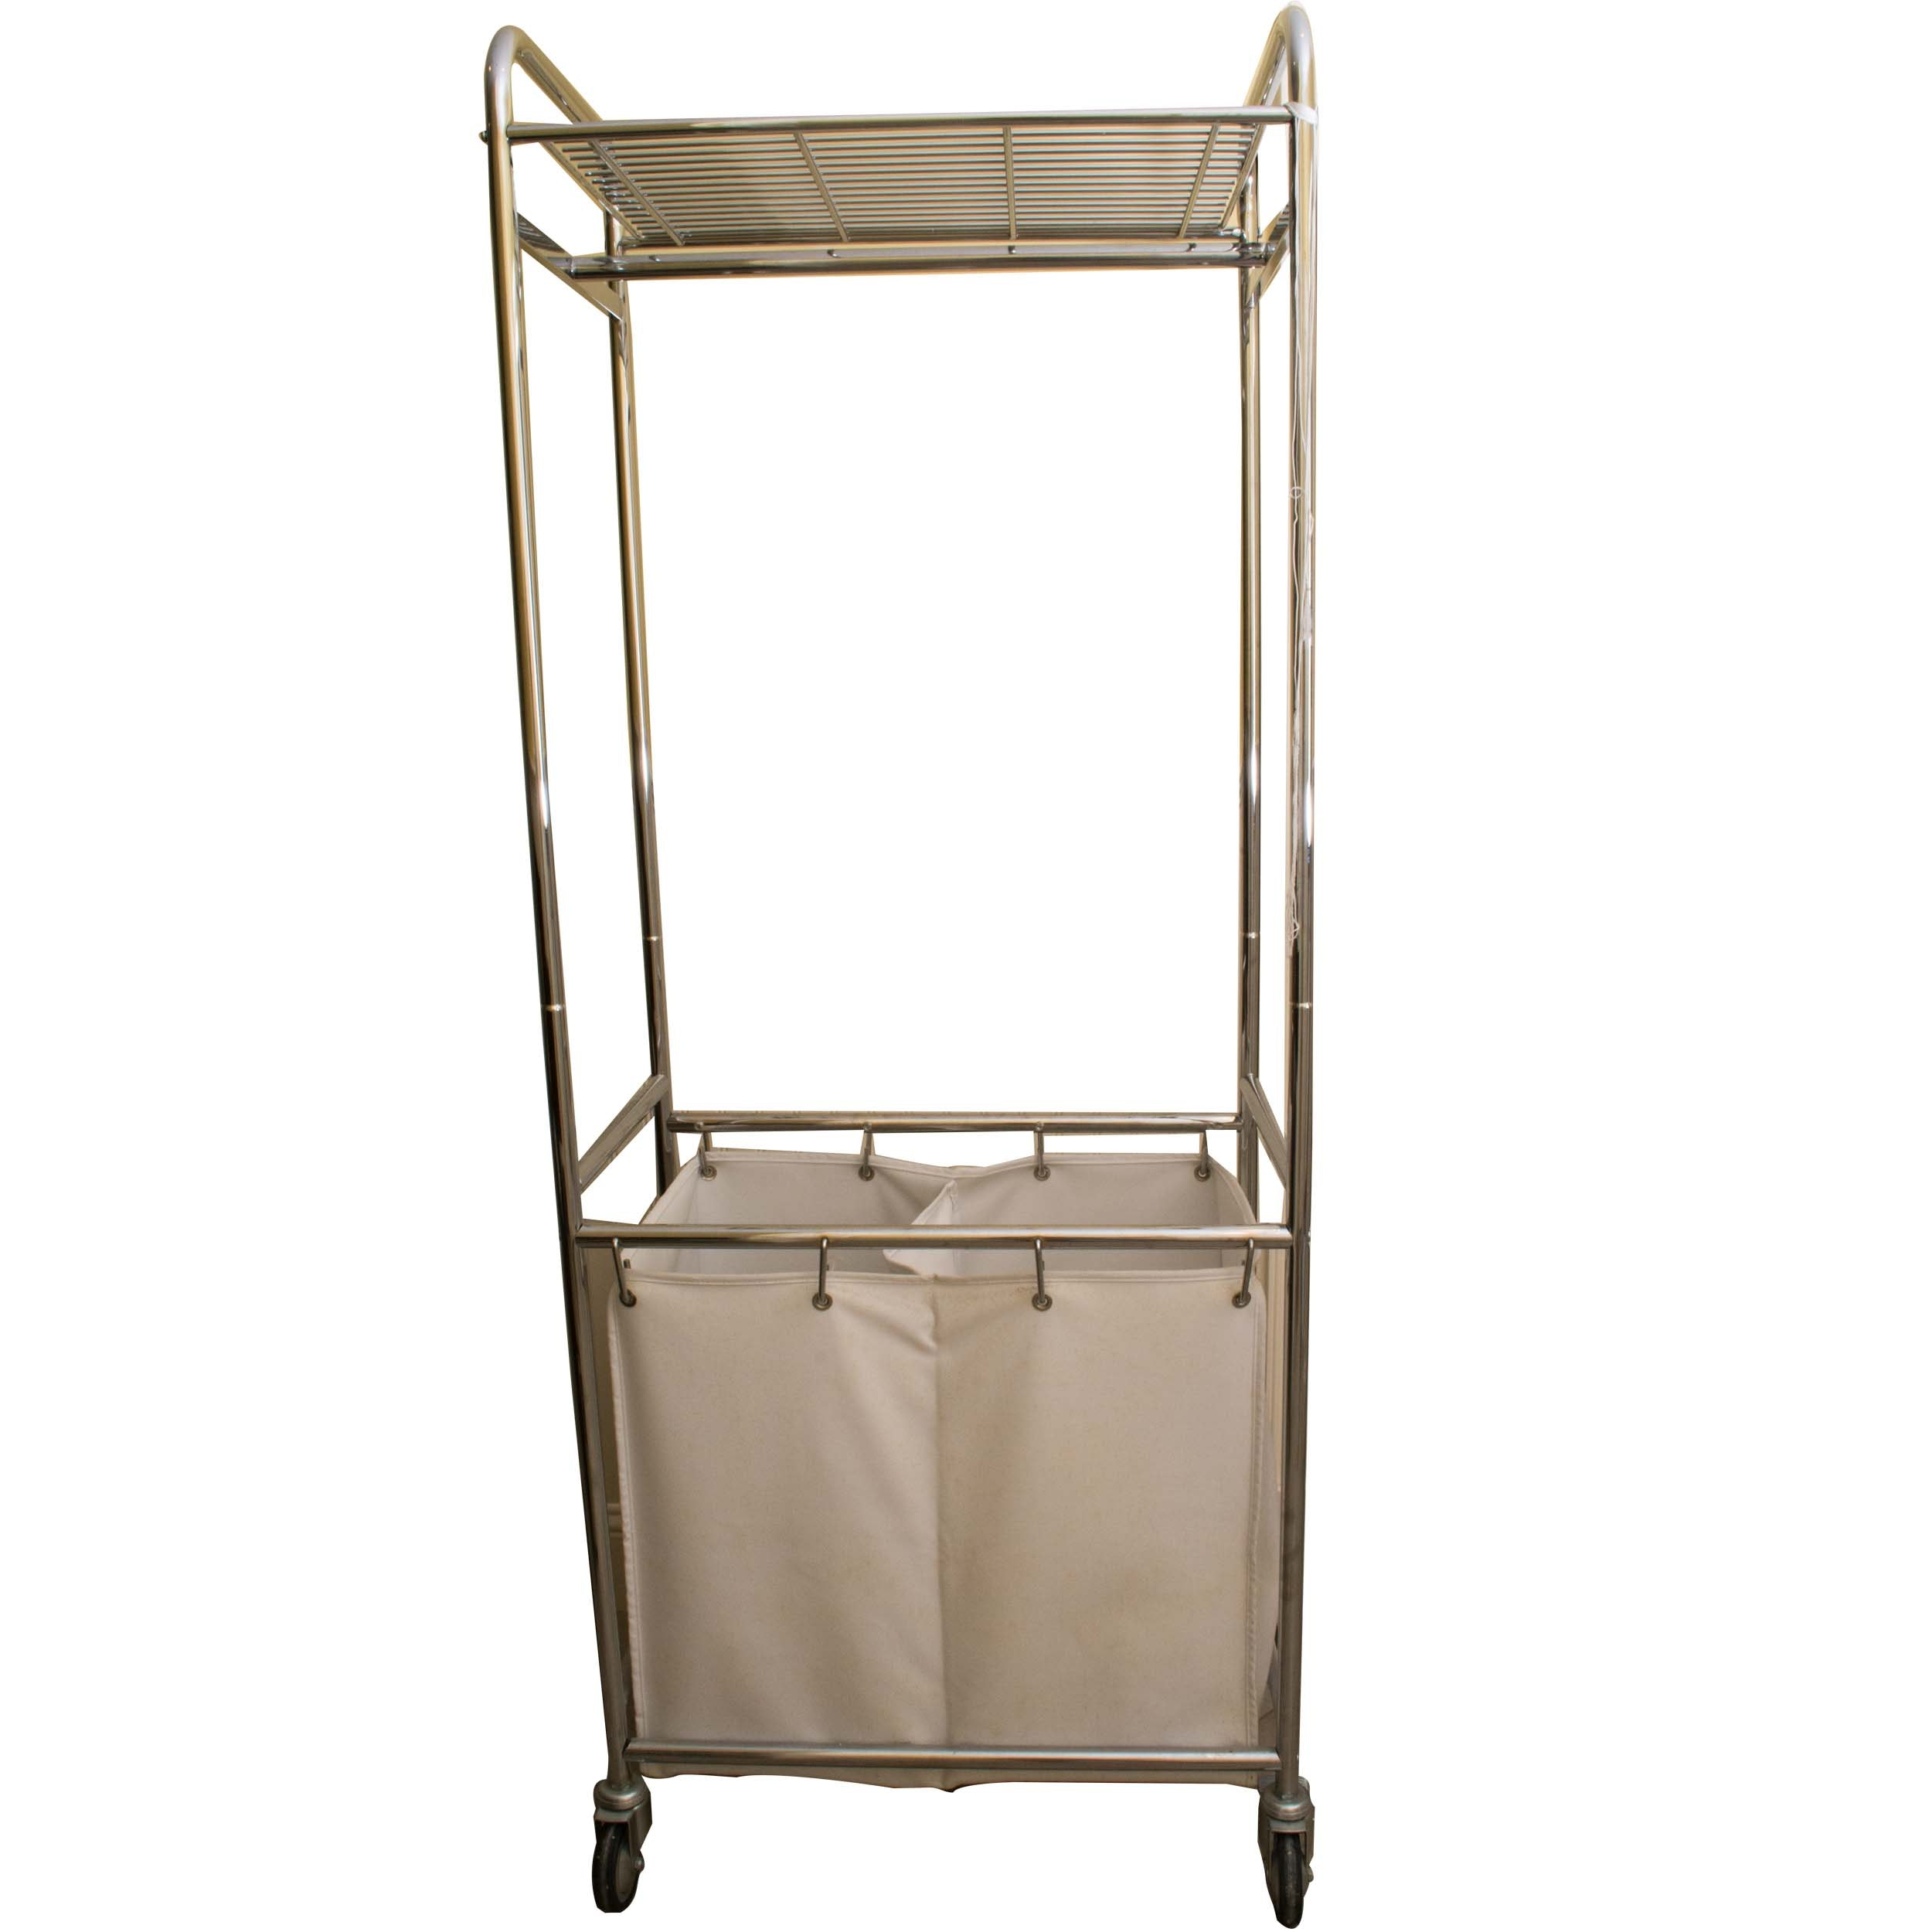 Metal Clothing Rack and Cart